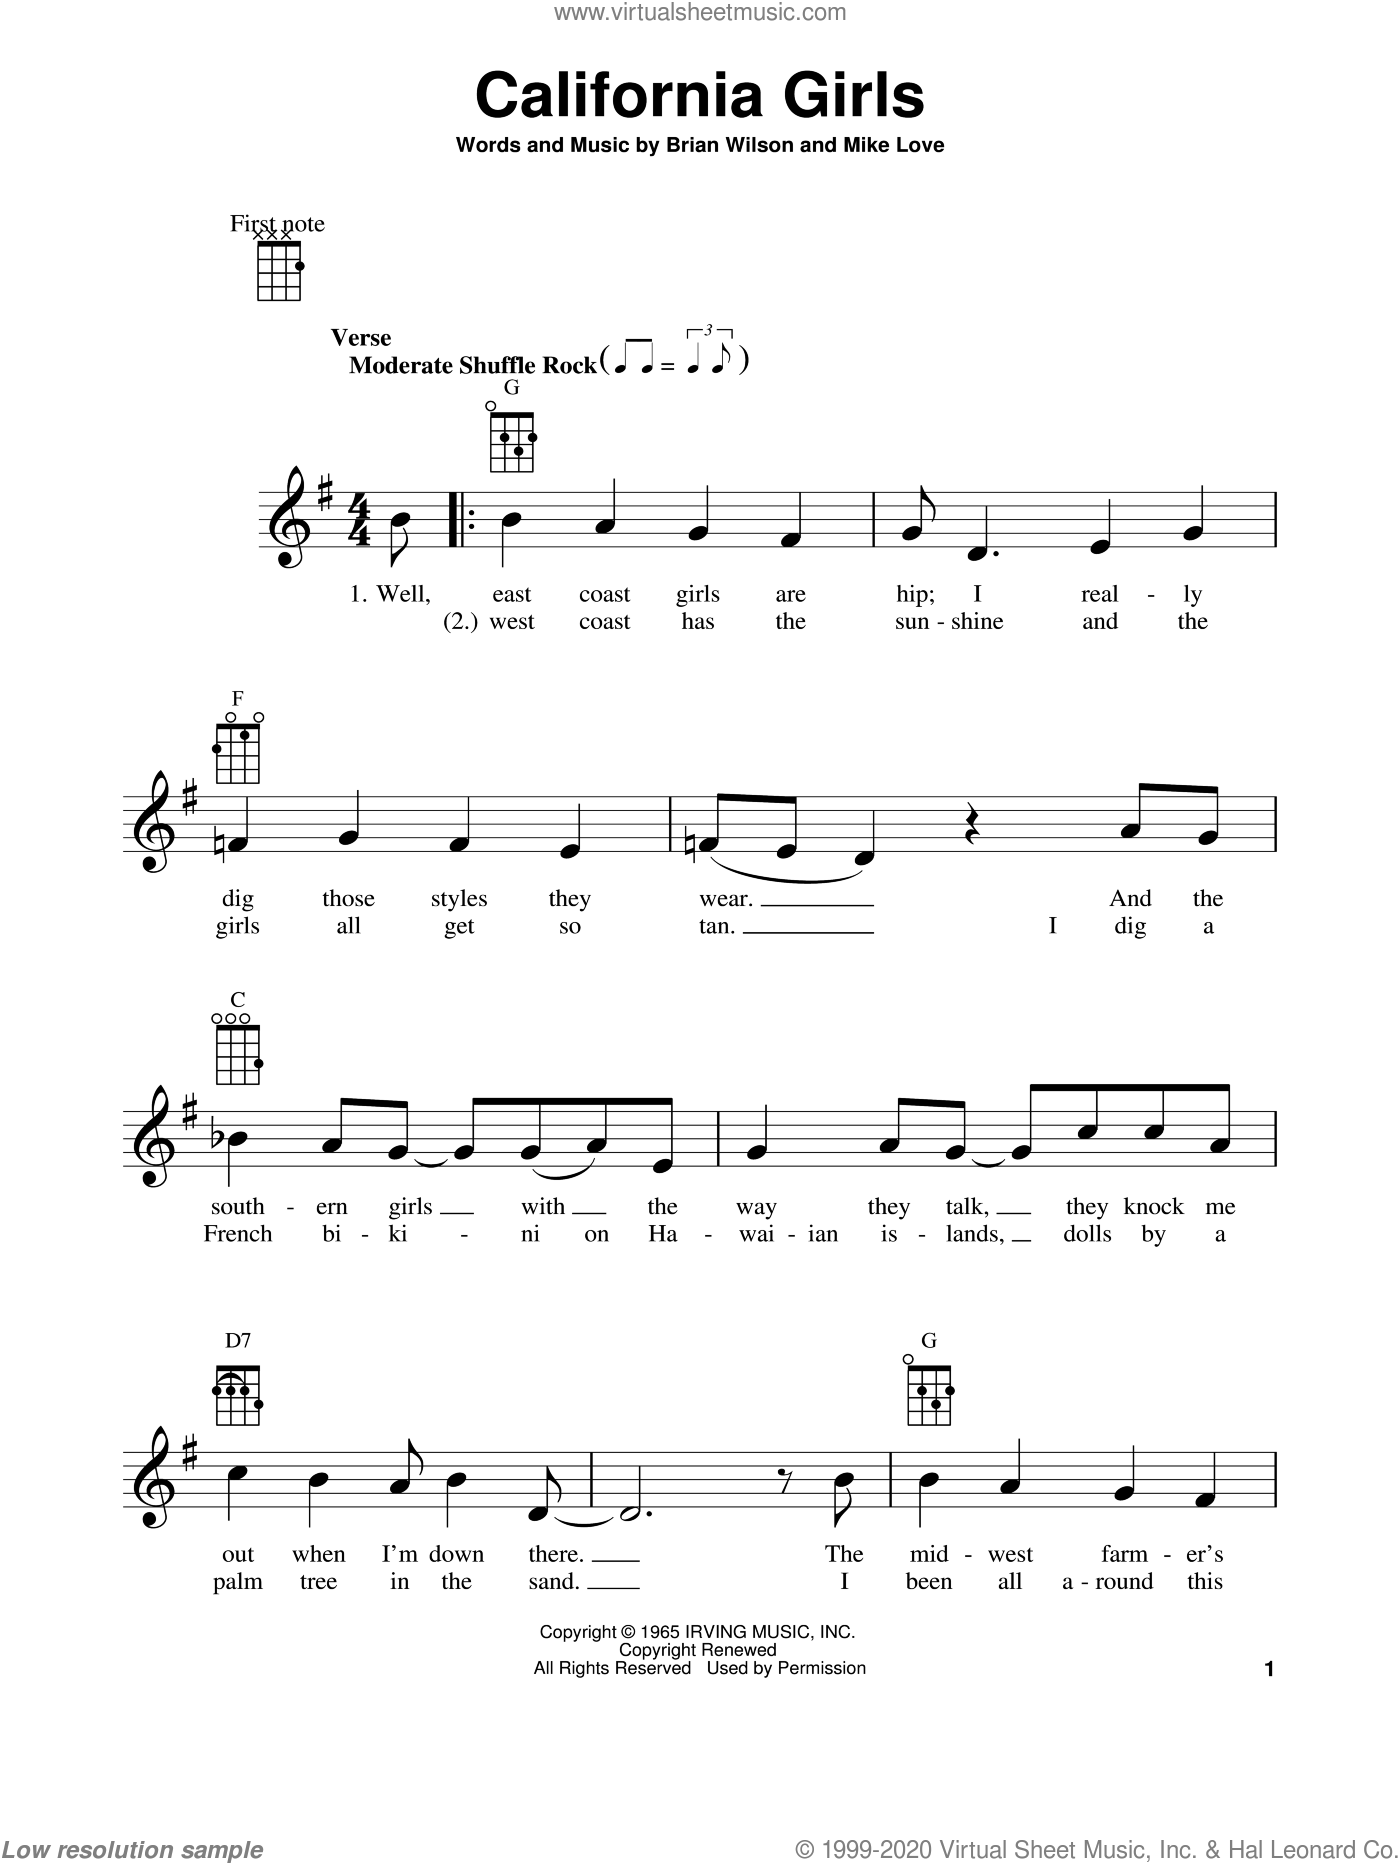 California Girls sheet music for ukulele by The Beach Boys, Brian Wilson and Mike Love, intermediate skill level